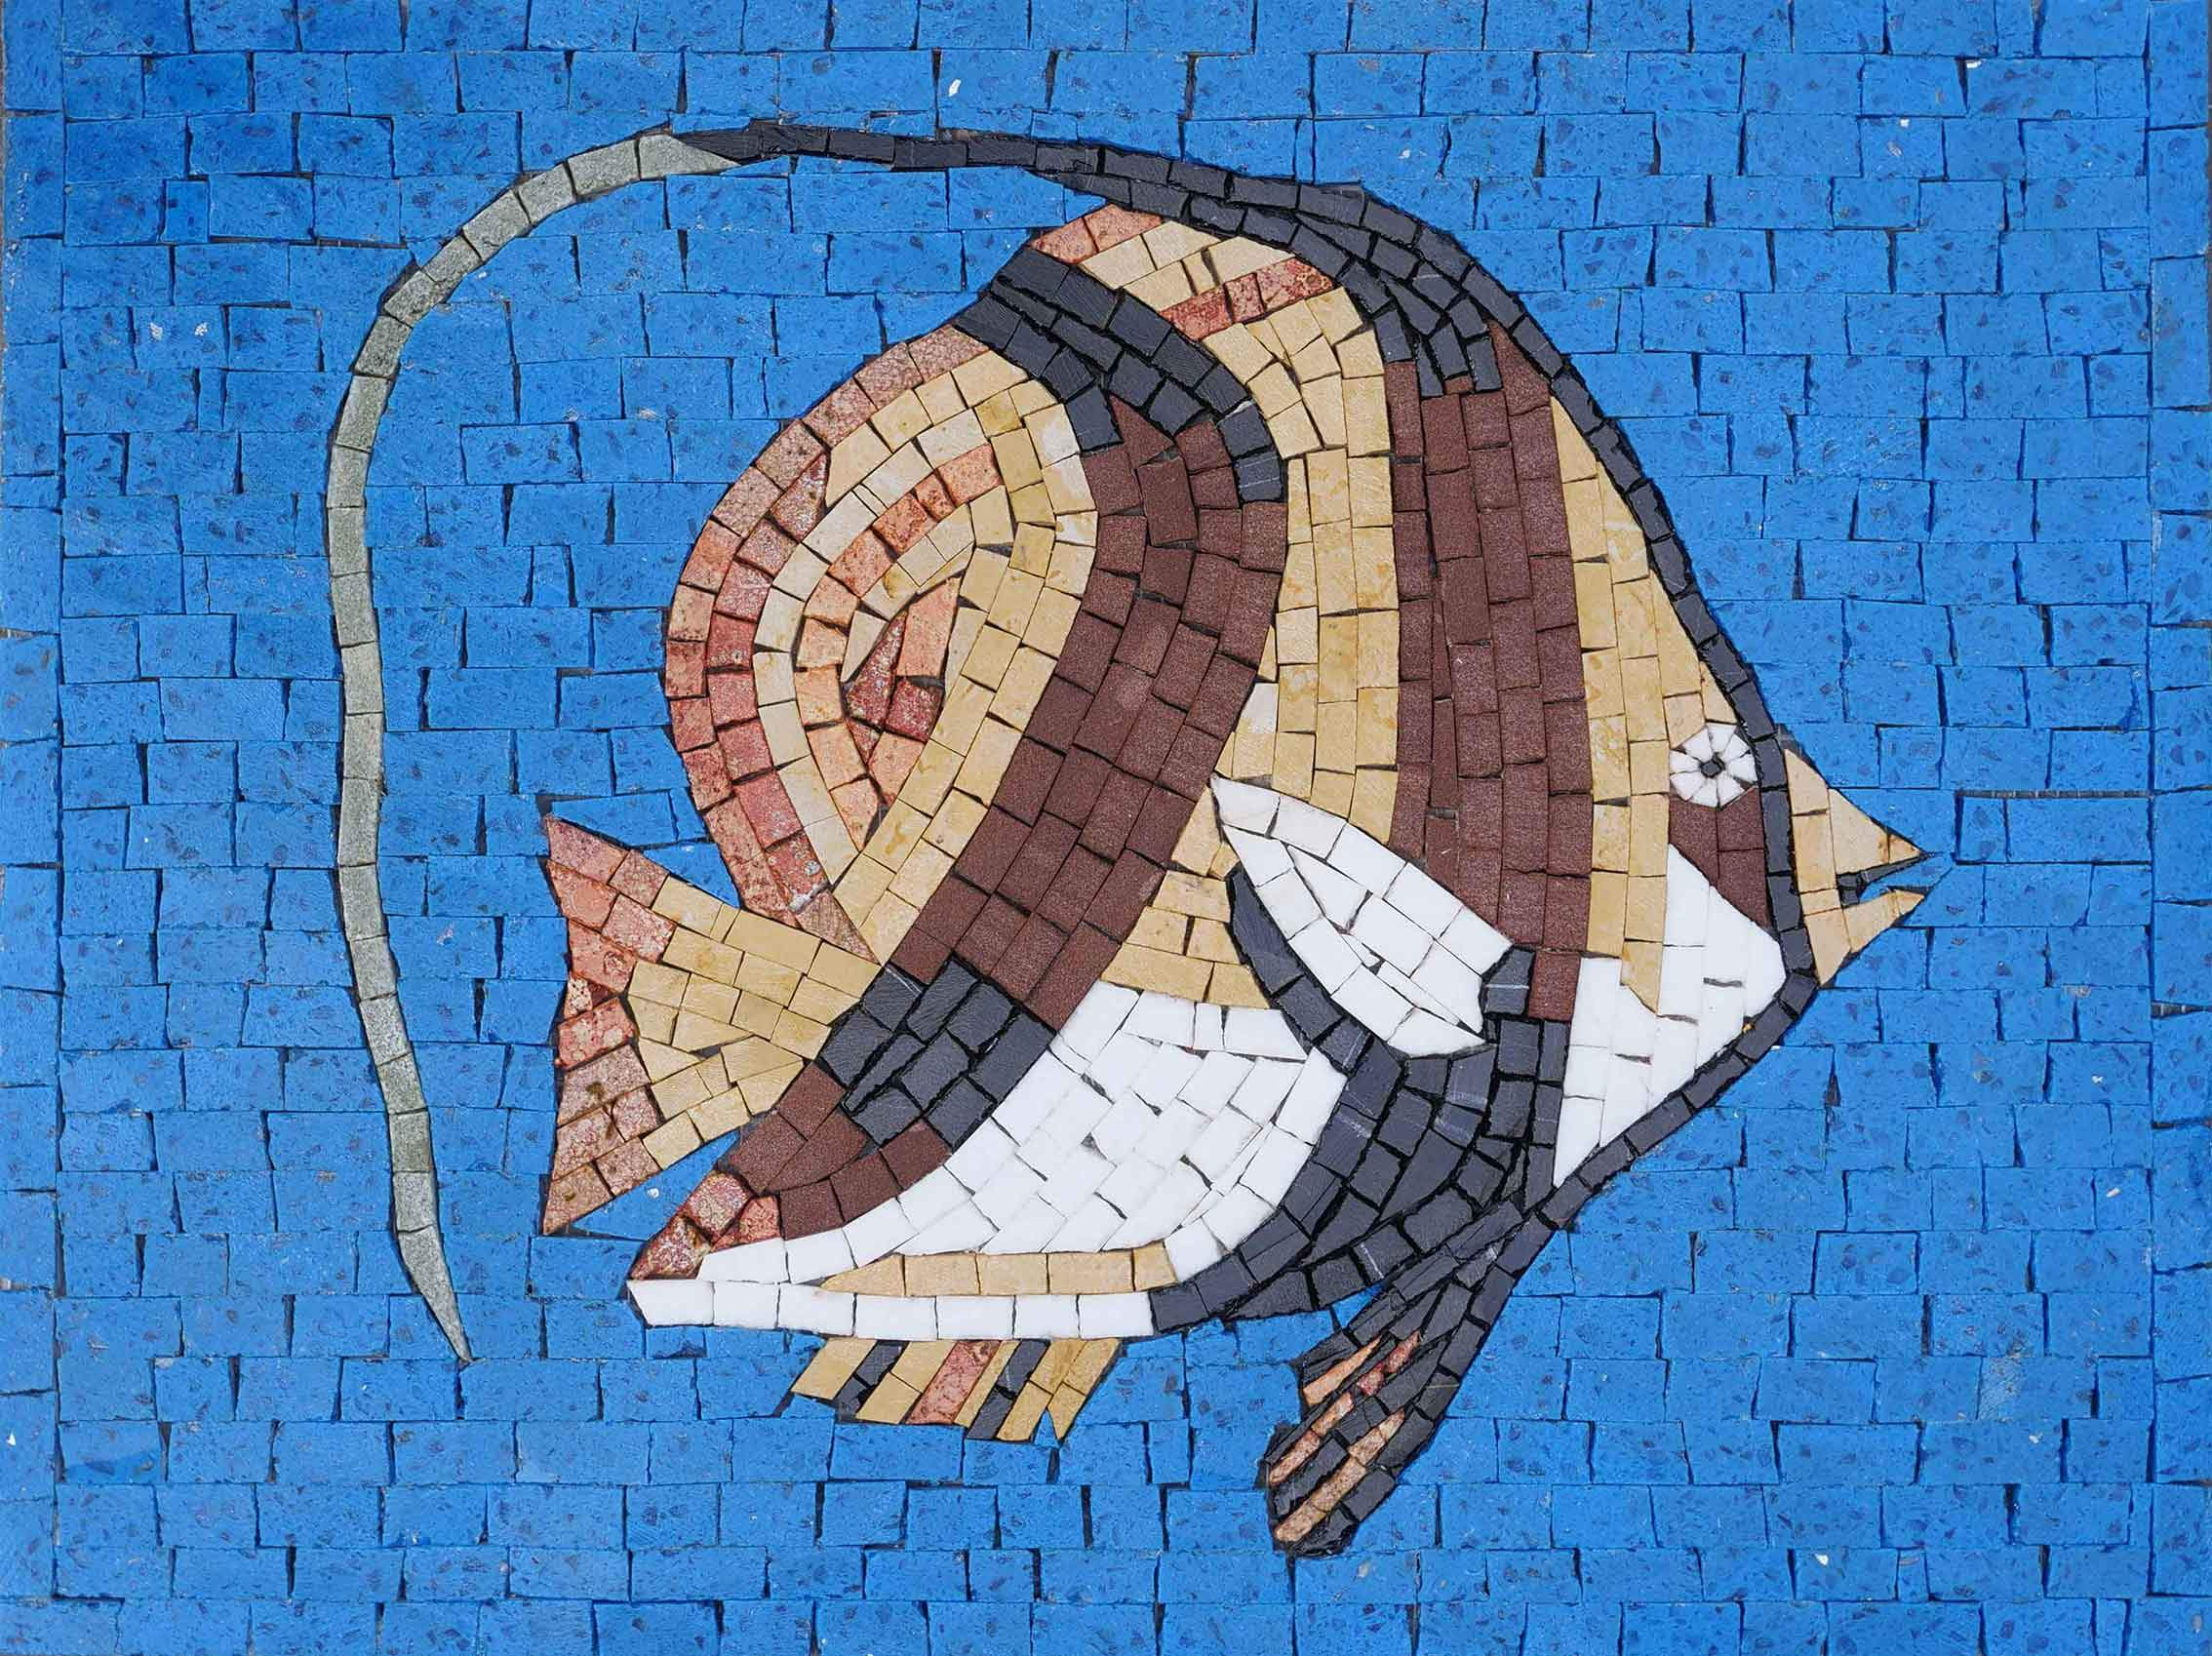 Brown Moorish Idol fish- Mosaic Wall Art